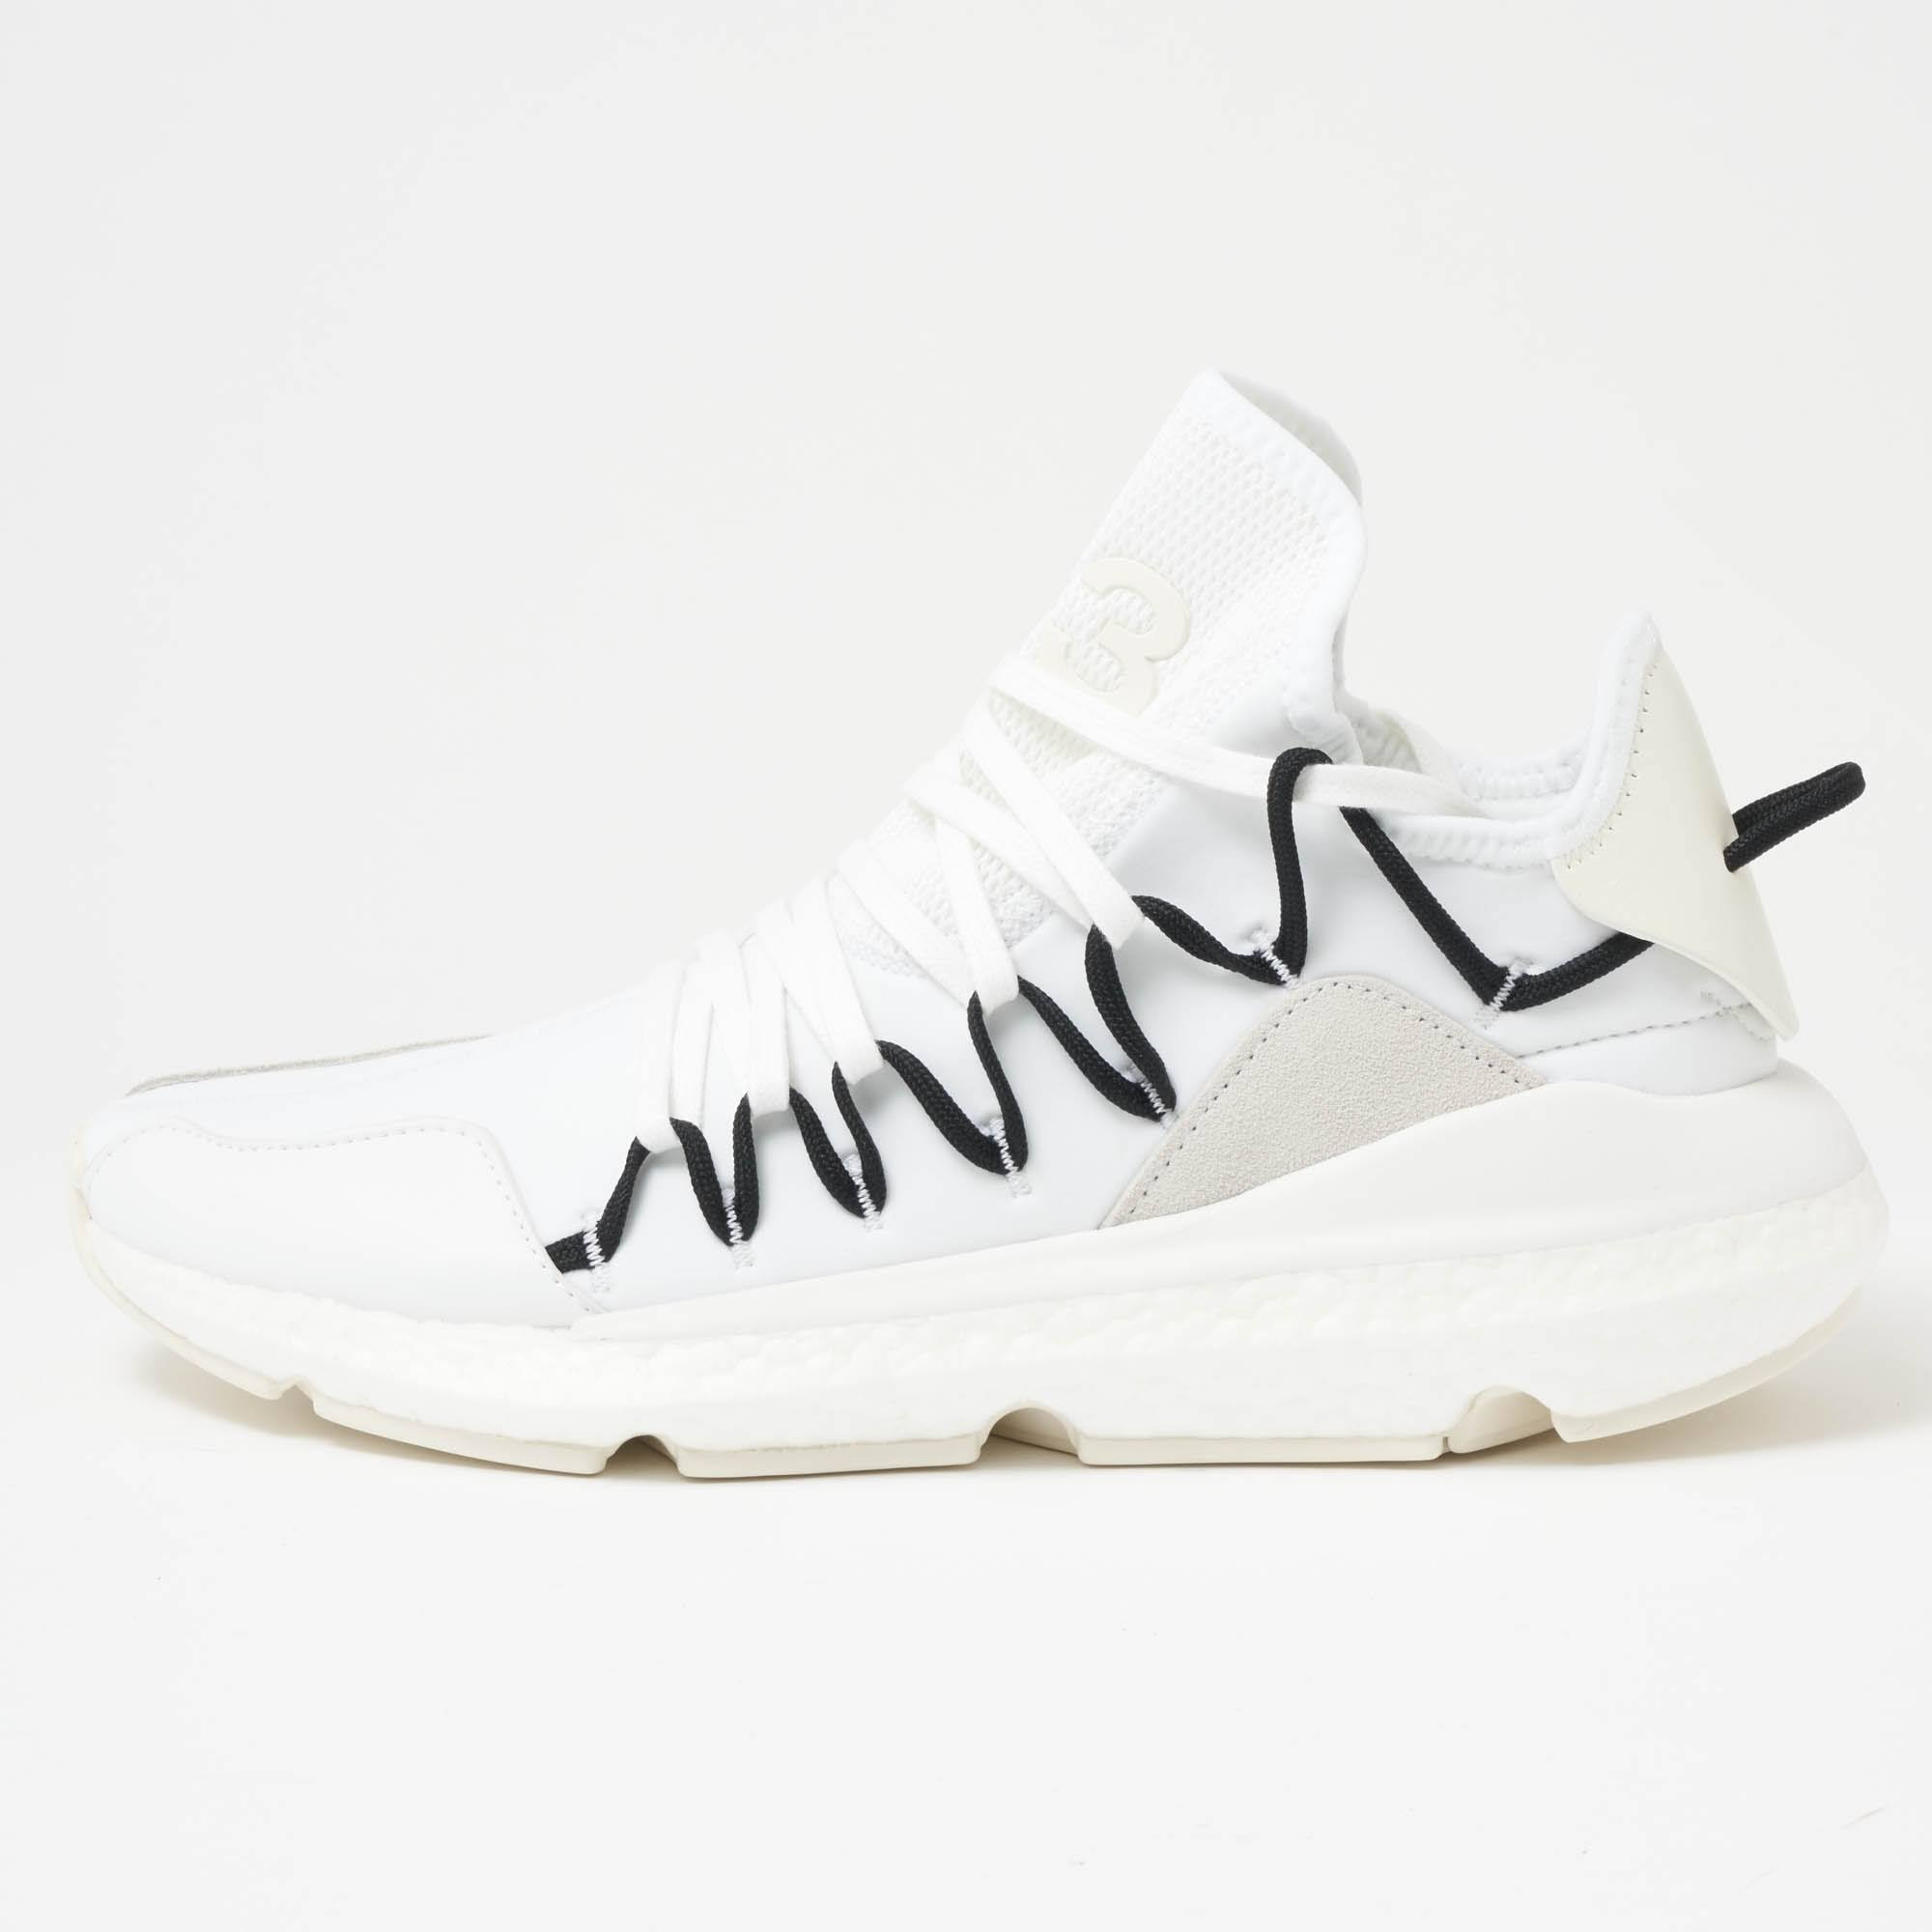 3 White Sneakers 10 Kusari Y dqwFT8vd